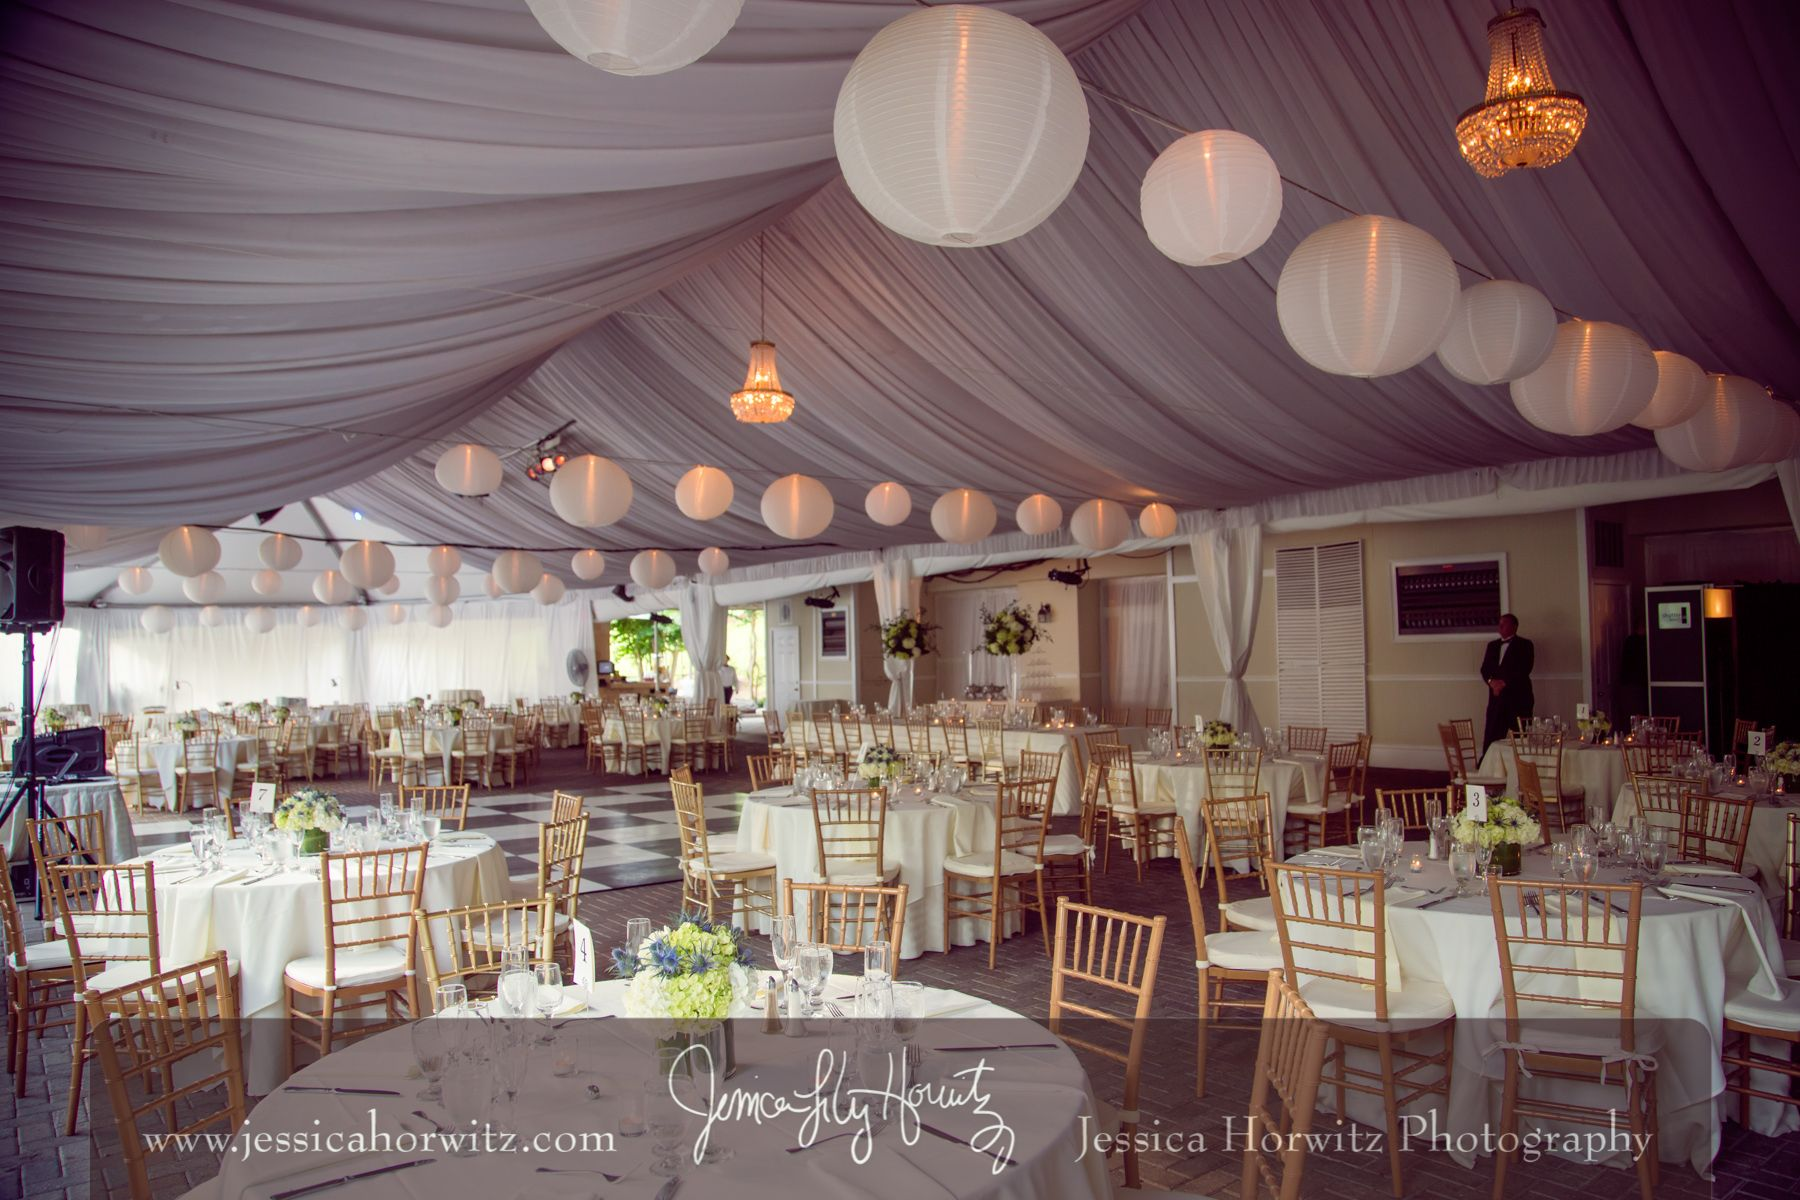 Piedmont Garden Tent Reception at Park Tavern - Photo by Jessica Horwitz Photography & Piedmont Garden Tent Reception at Park Tavern - Photo by Jessica ...